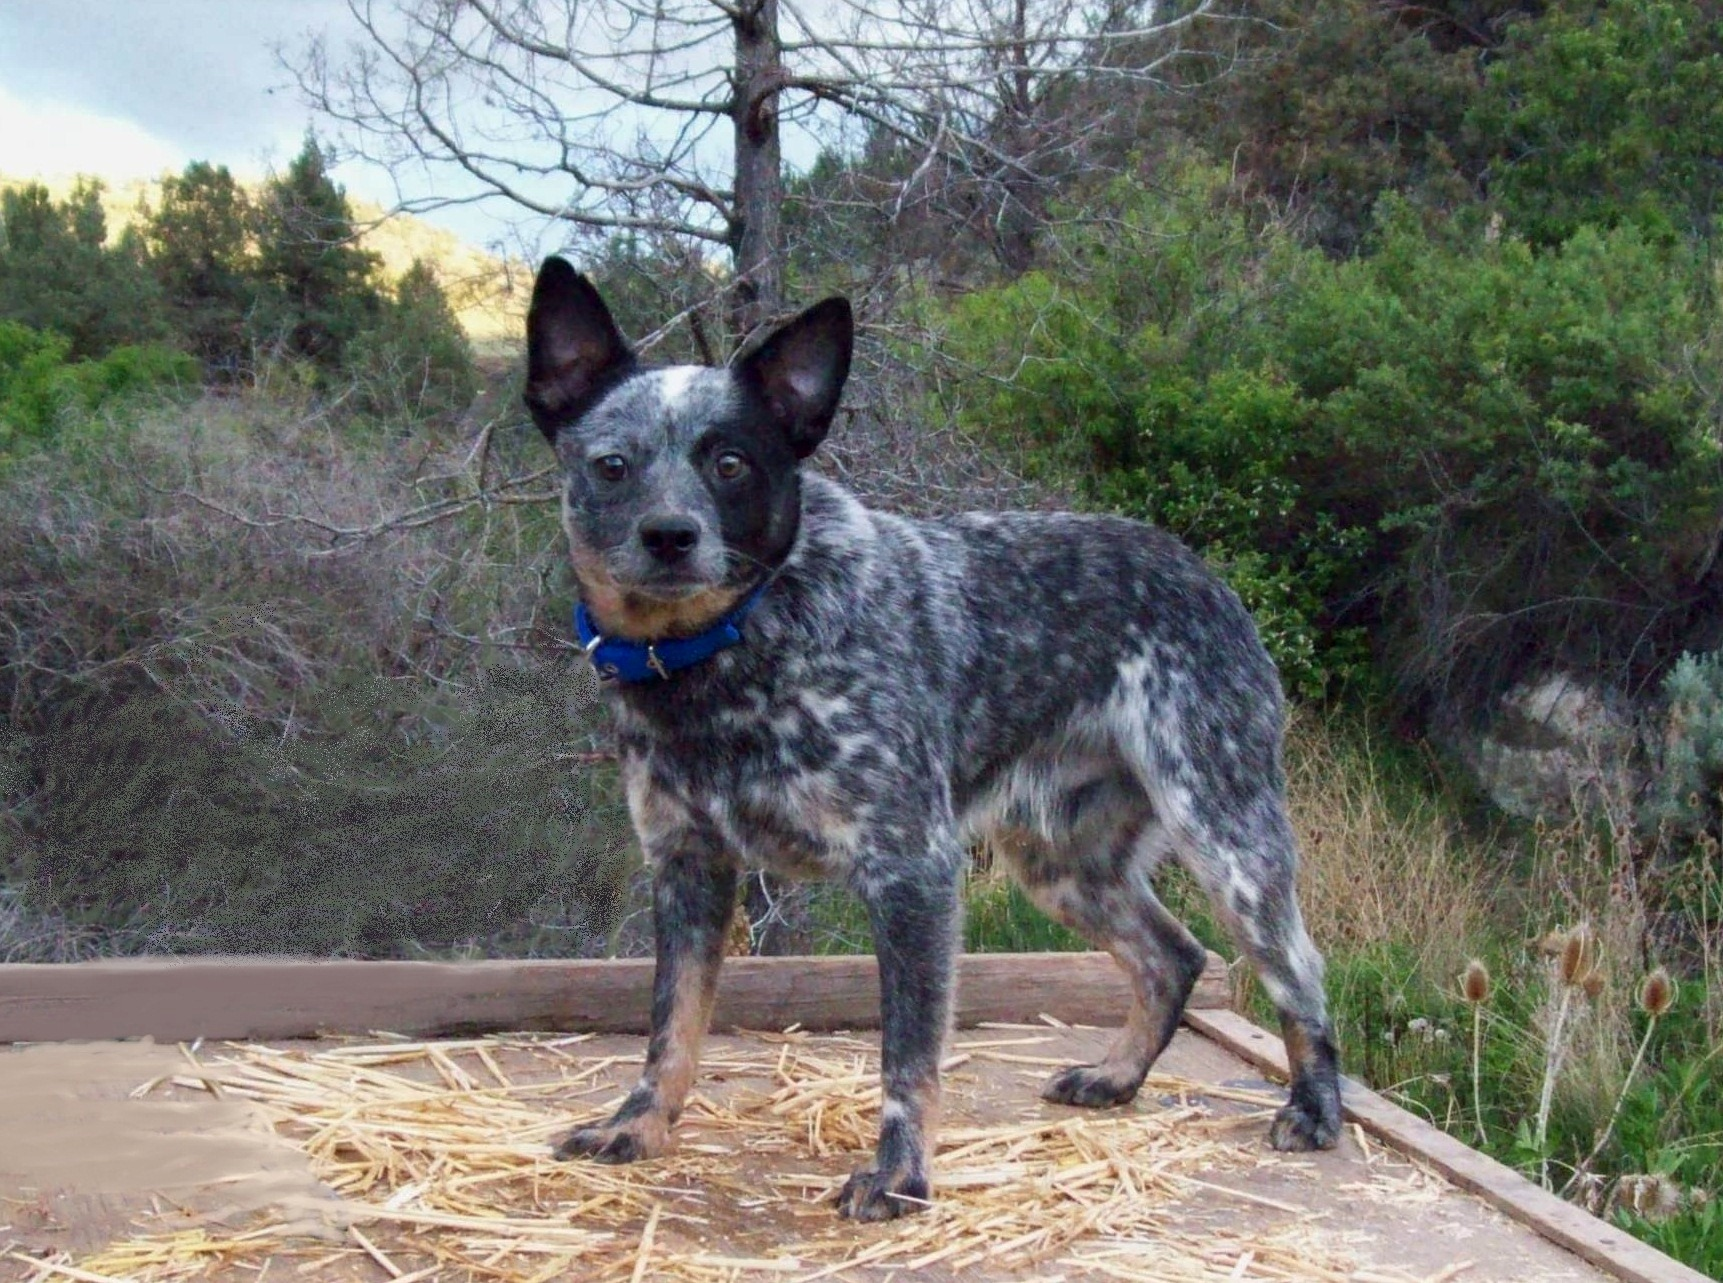 Blue Heelers For Sale : 3 mini and toy heelers rightwayranch@hotmail.com